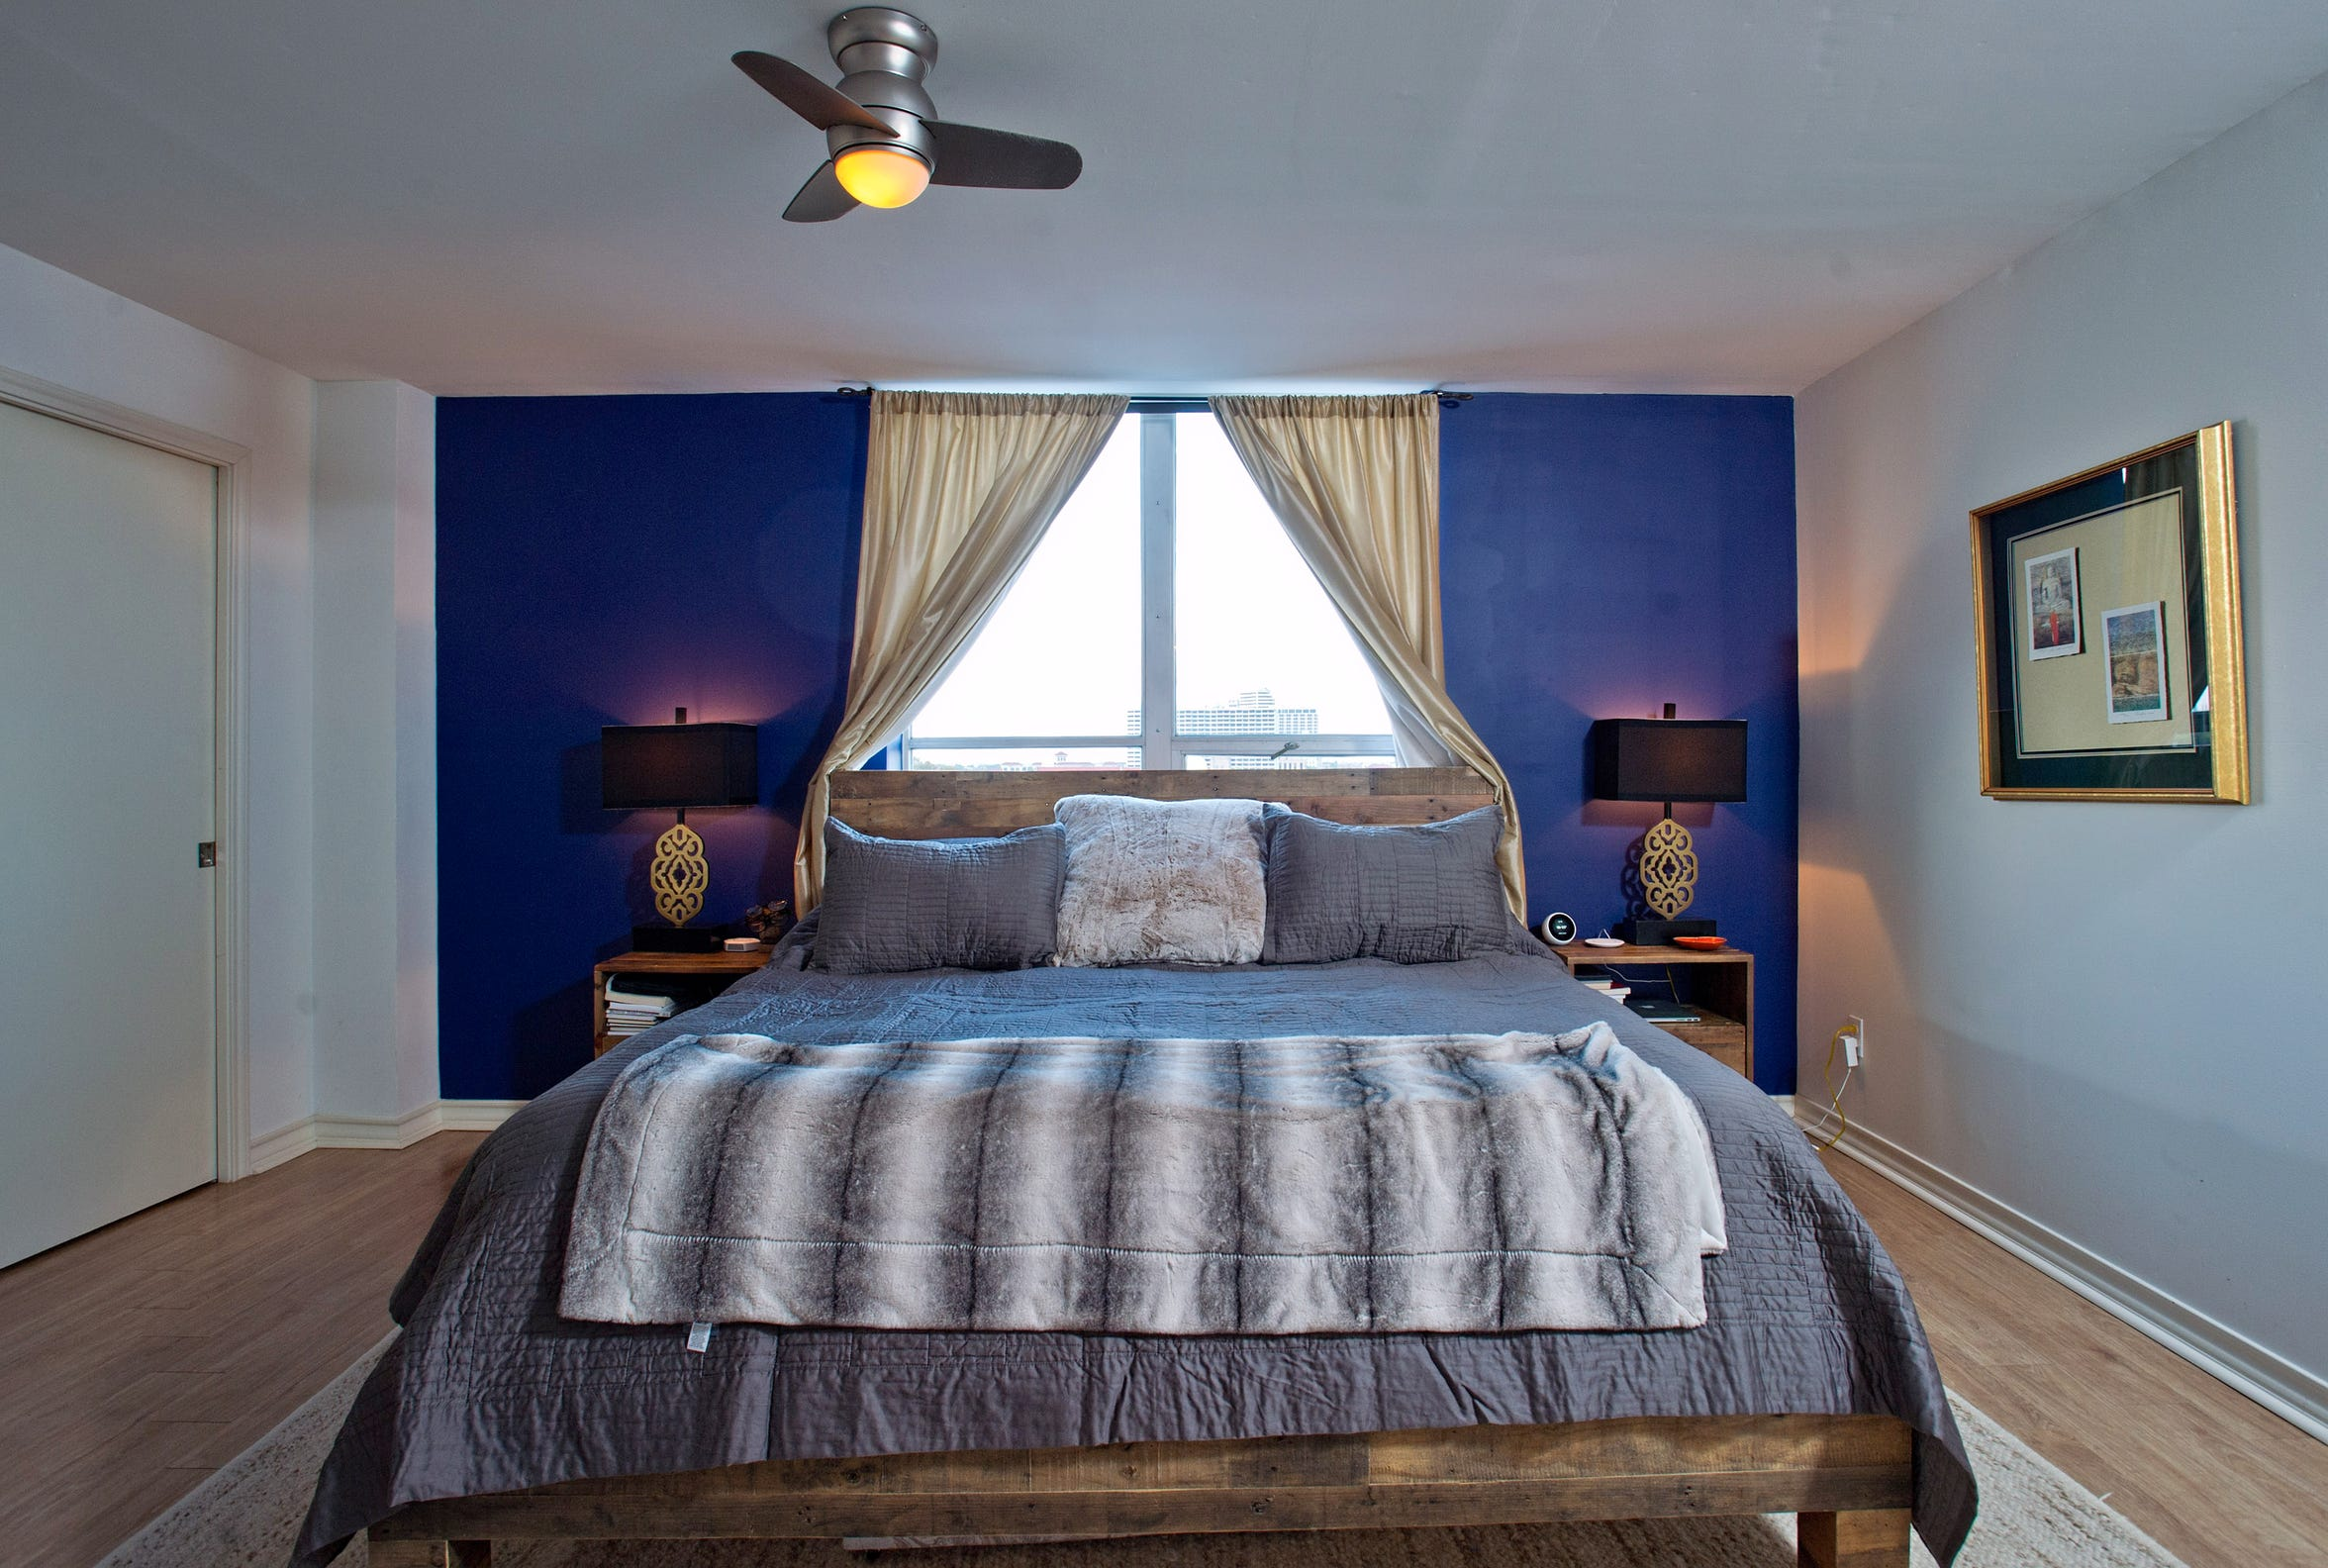 The master bedroom has two walk-in his and her closets.